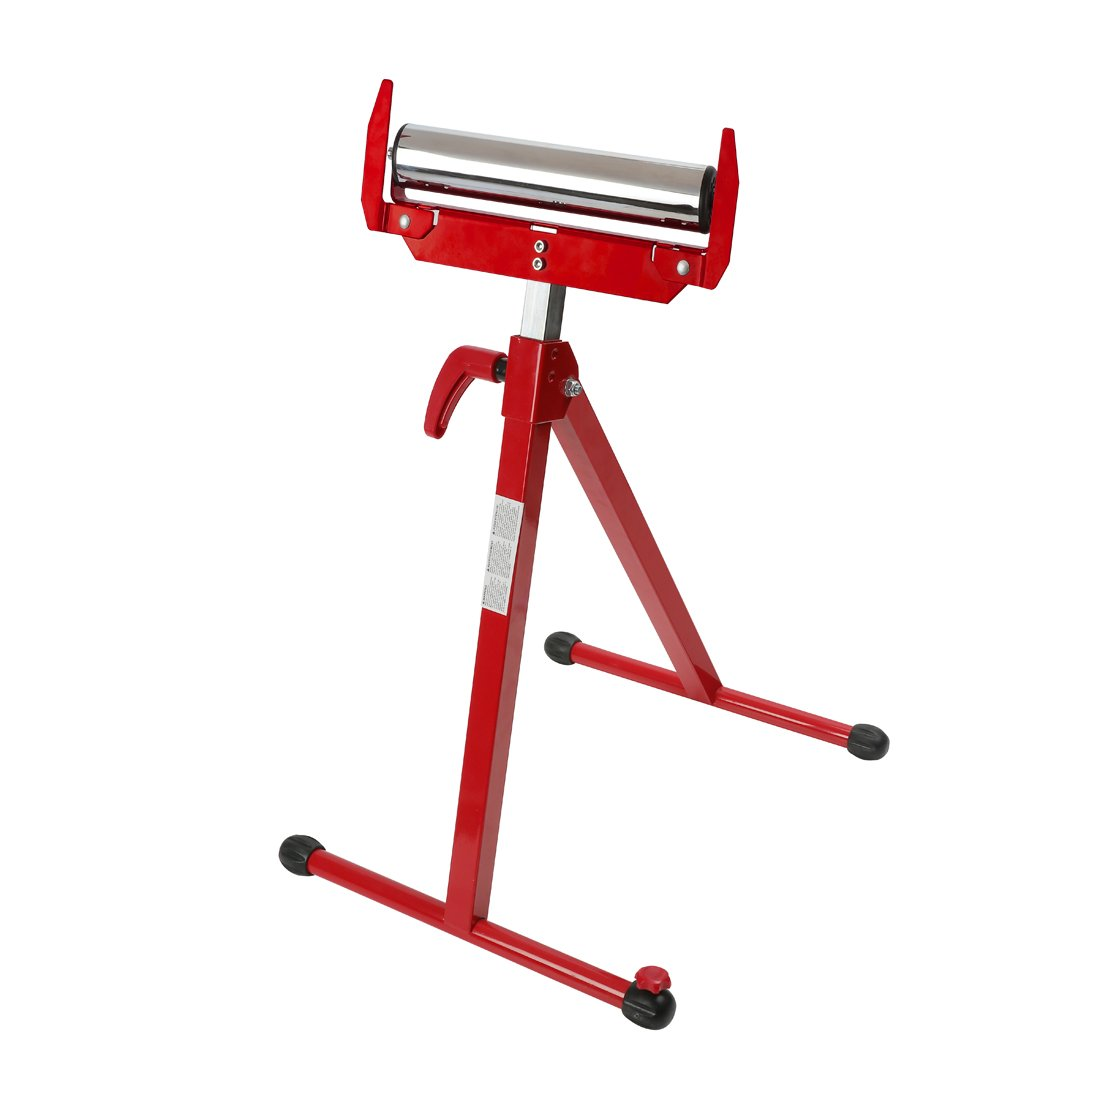 WORKPRO W137006A Folding Roller Stand Height Adjustable by WORKPRO